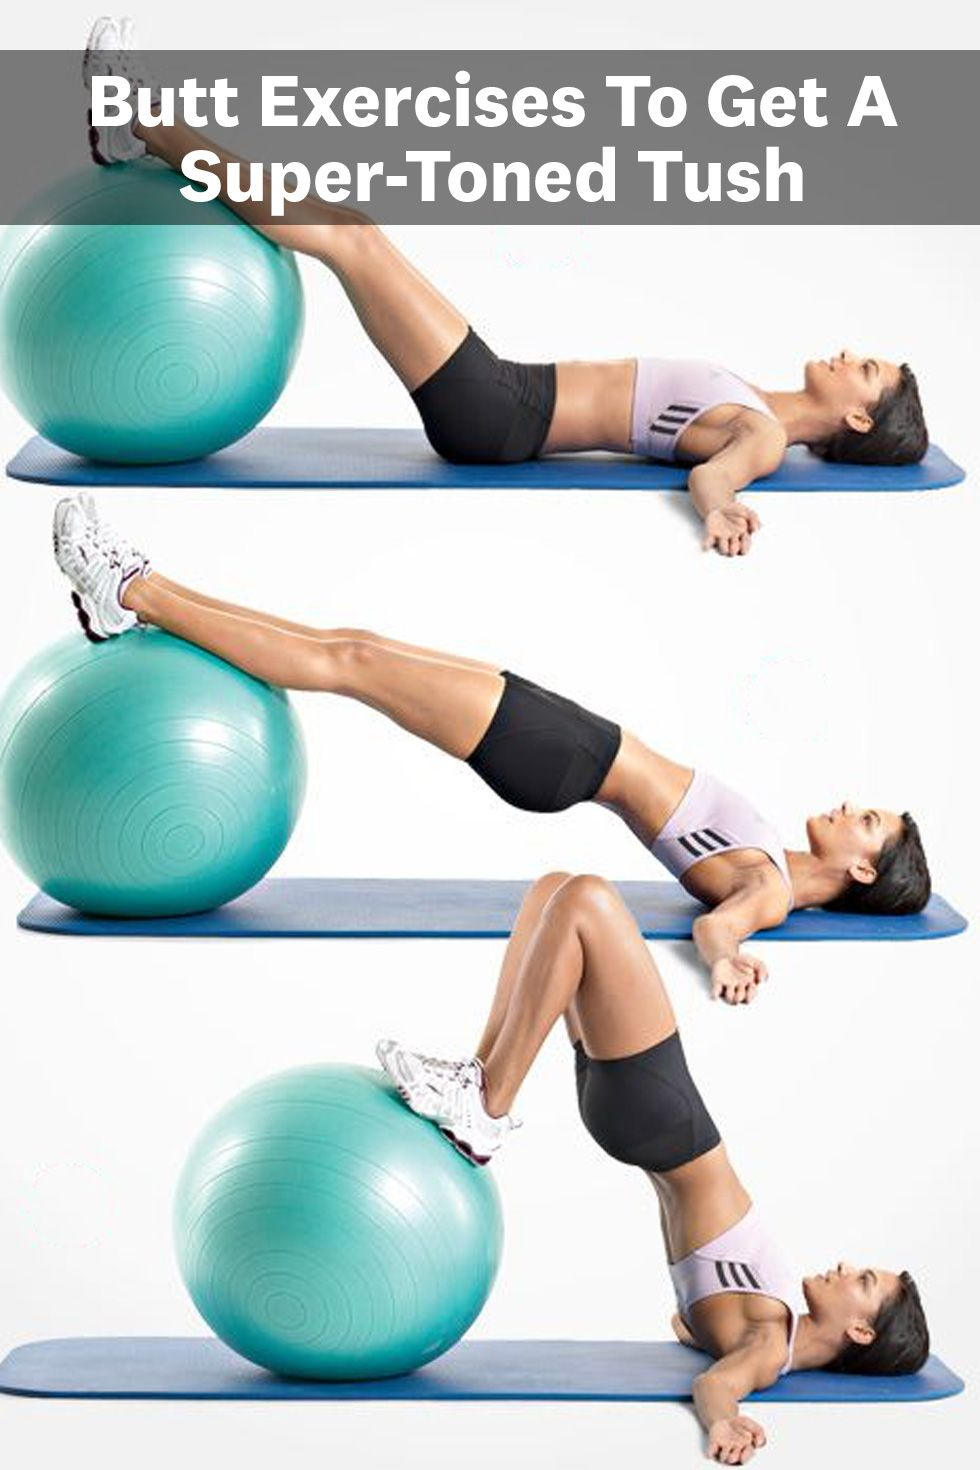 Butt lifting exercises for fast results